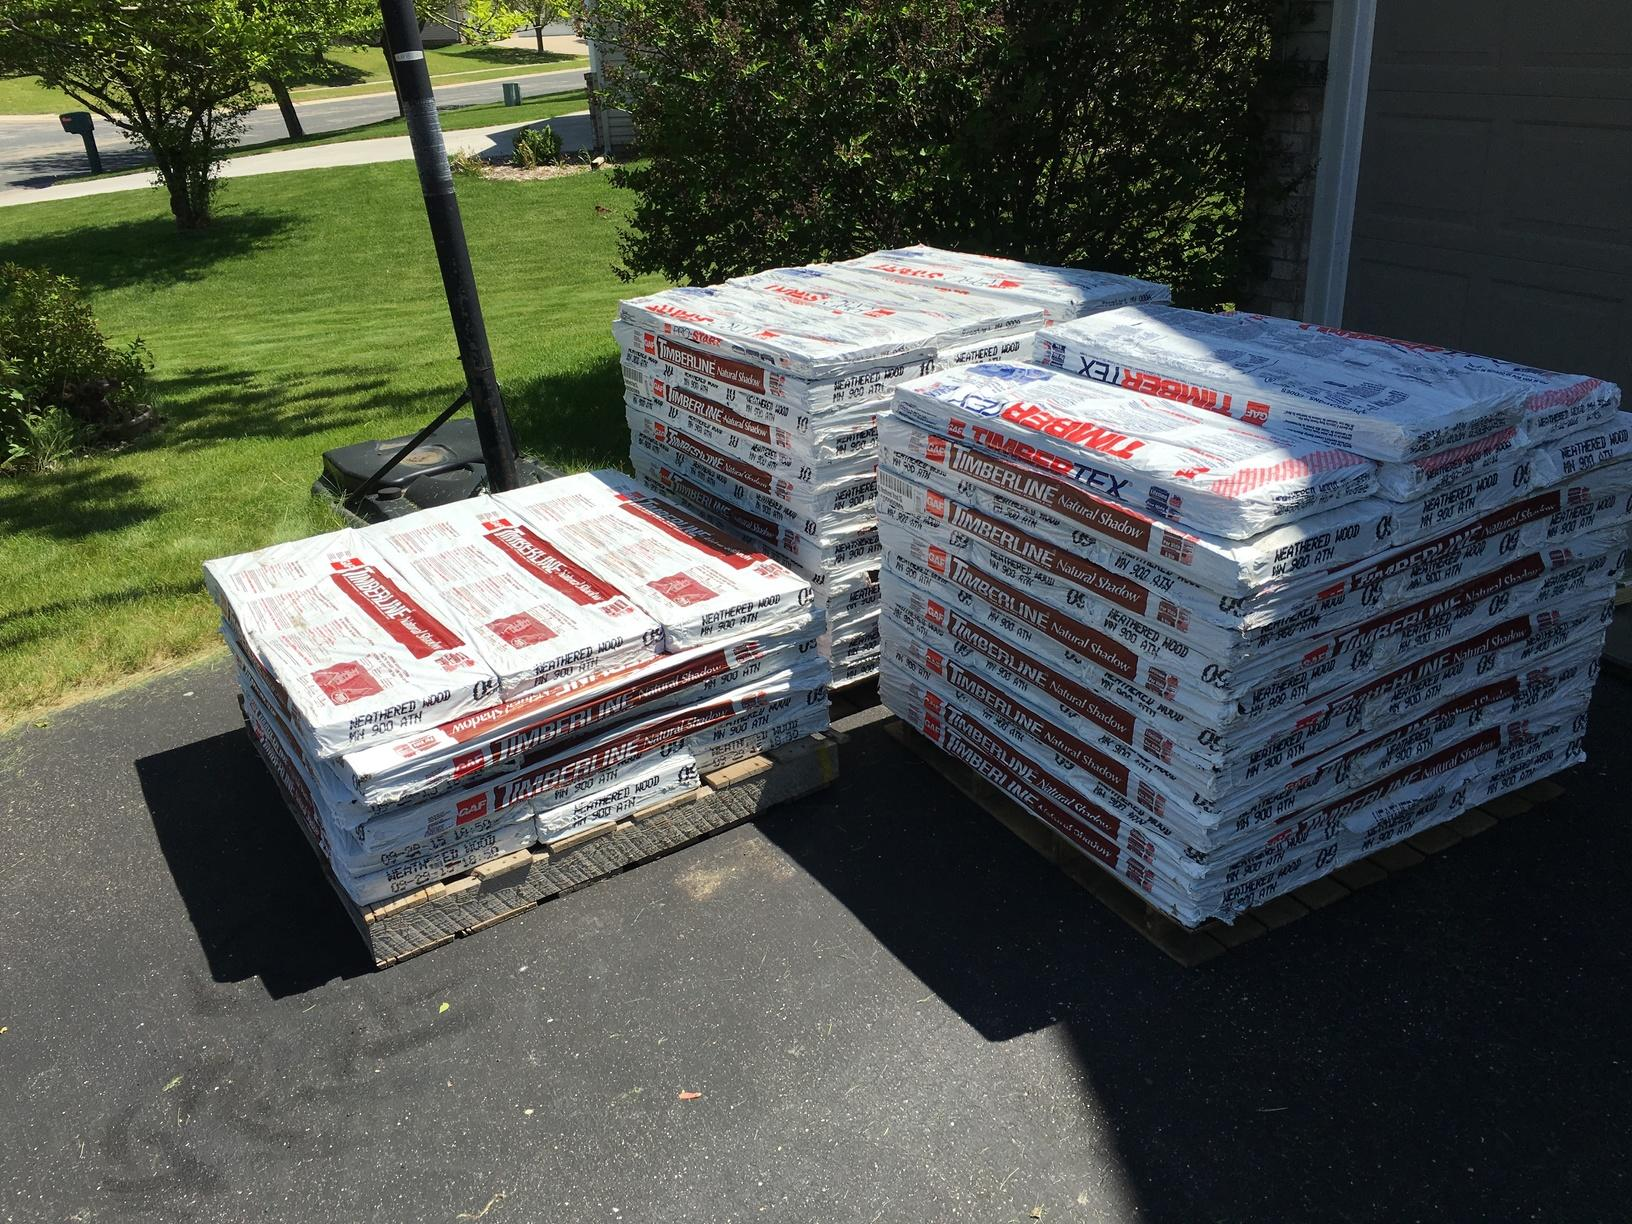 Before each roof replacement or project, we complete a pre-start checklist with the customer. This helps us to be on the same page as to where the customer would like us to place the dumpster and materials. Here are the GAF Shingles delivered the morning of the project.